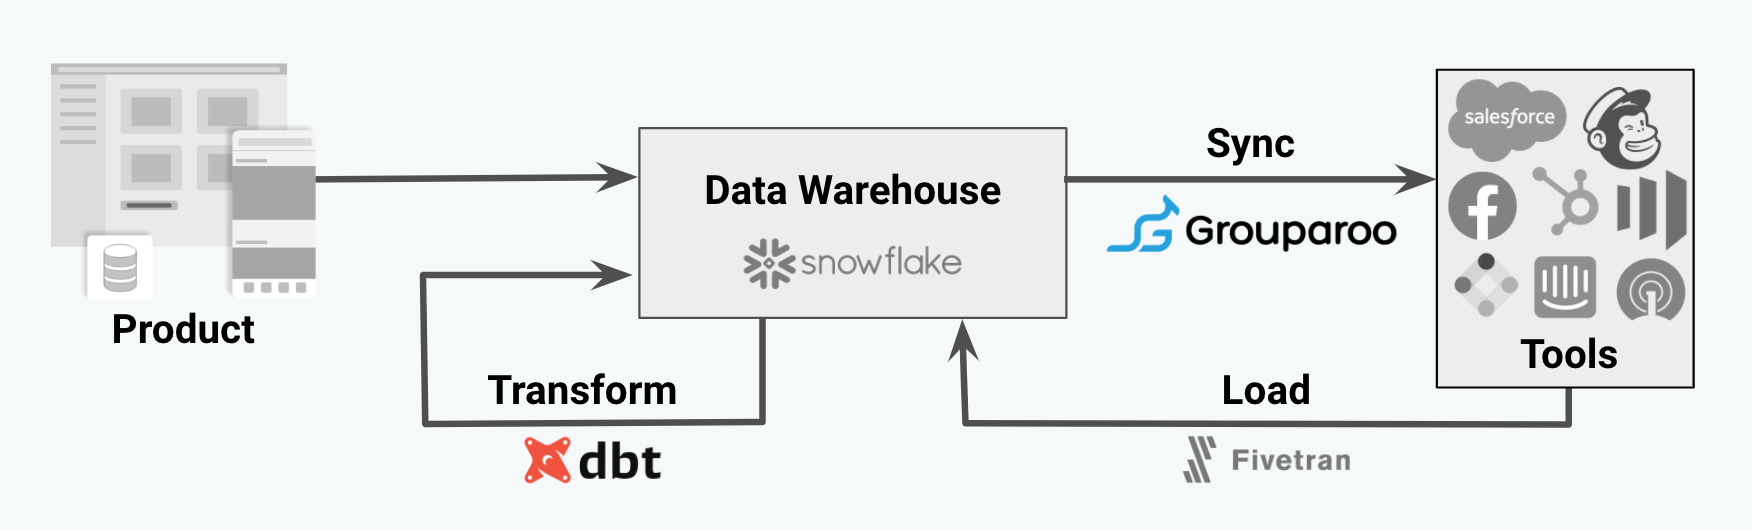 Data stack workflow with dbt doing transform and Grouparoo doing reverse ETL sync.